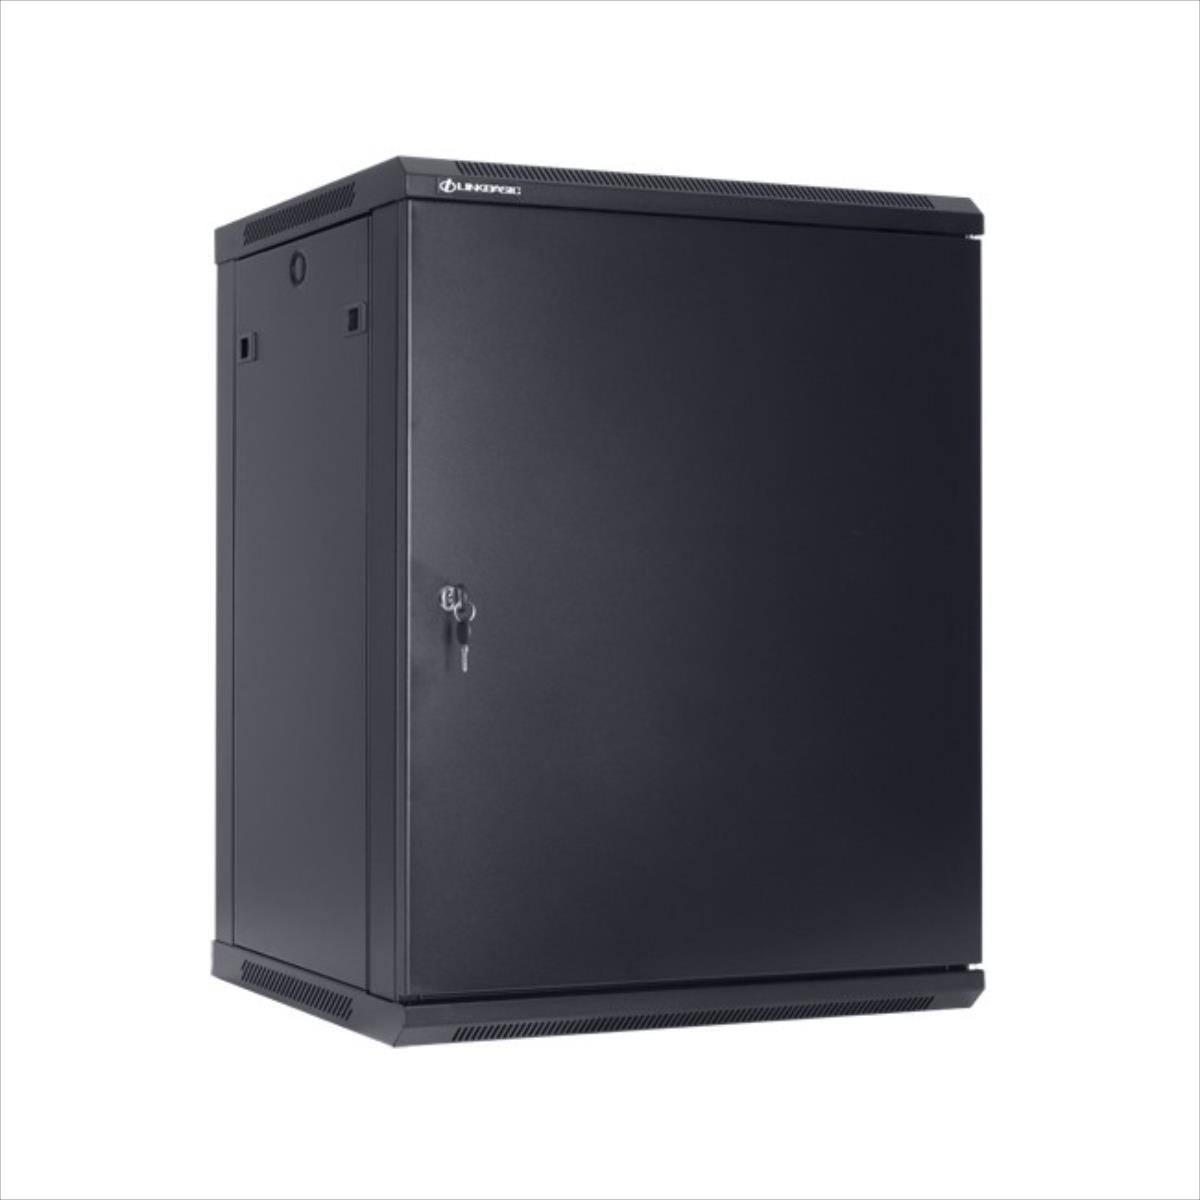 Linkbasic rack wall-mounting cabinet 19'' 12U 600x450mm black (steel front door)